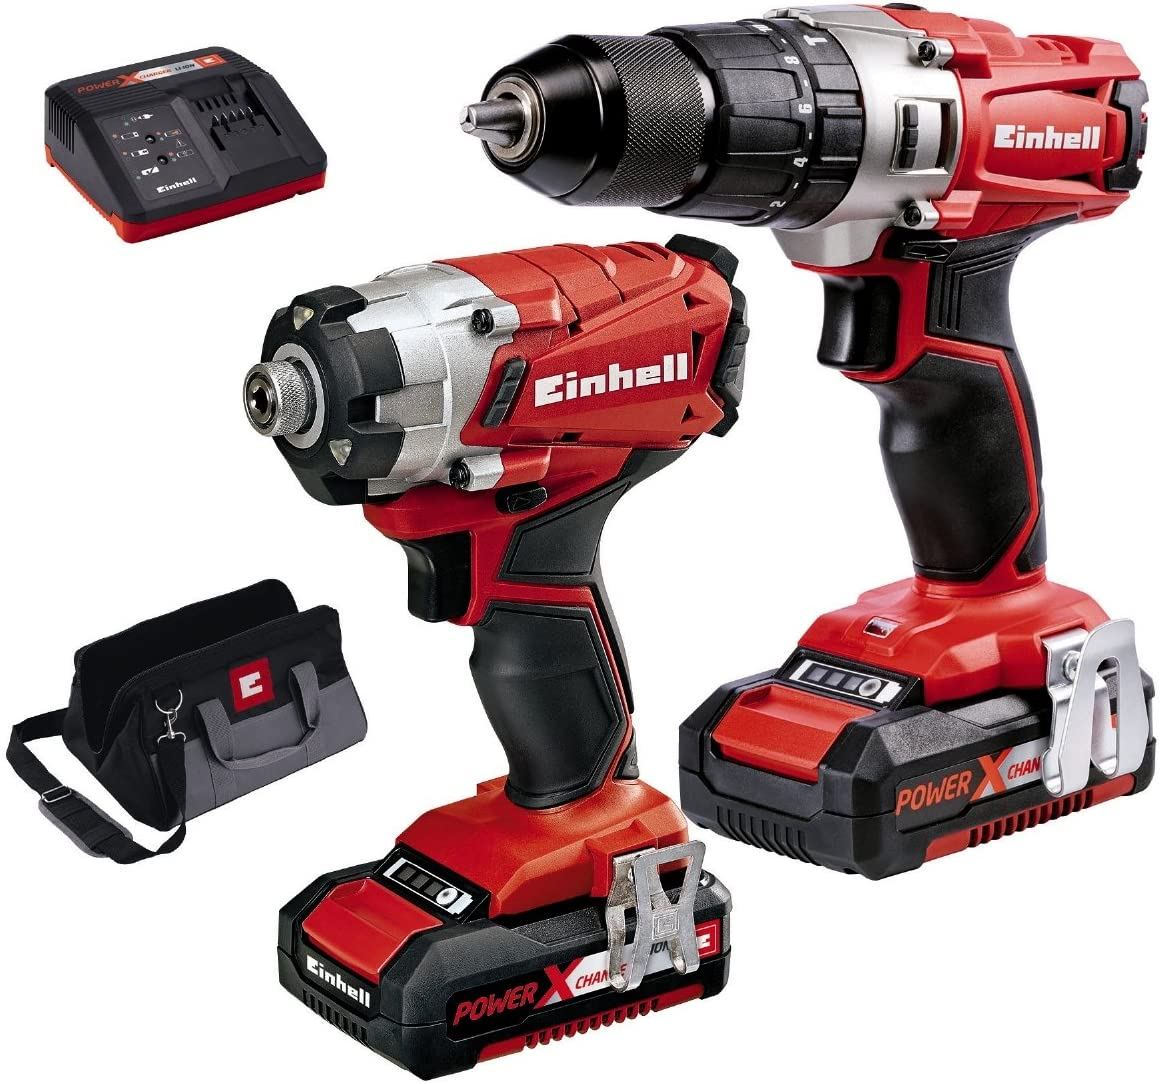 Red Einhell 4257201 Power X-Change Combi and Impact Driver Twin Pack